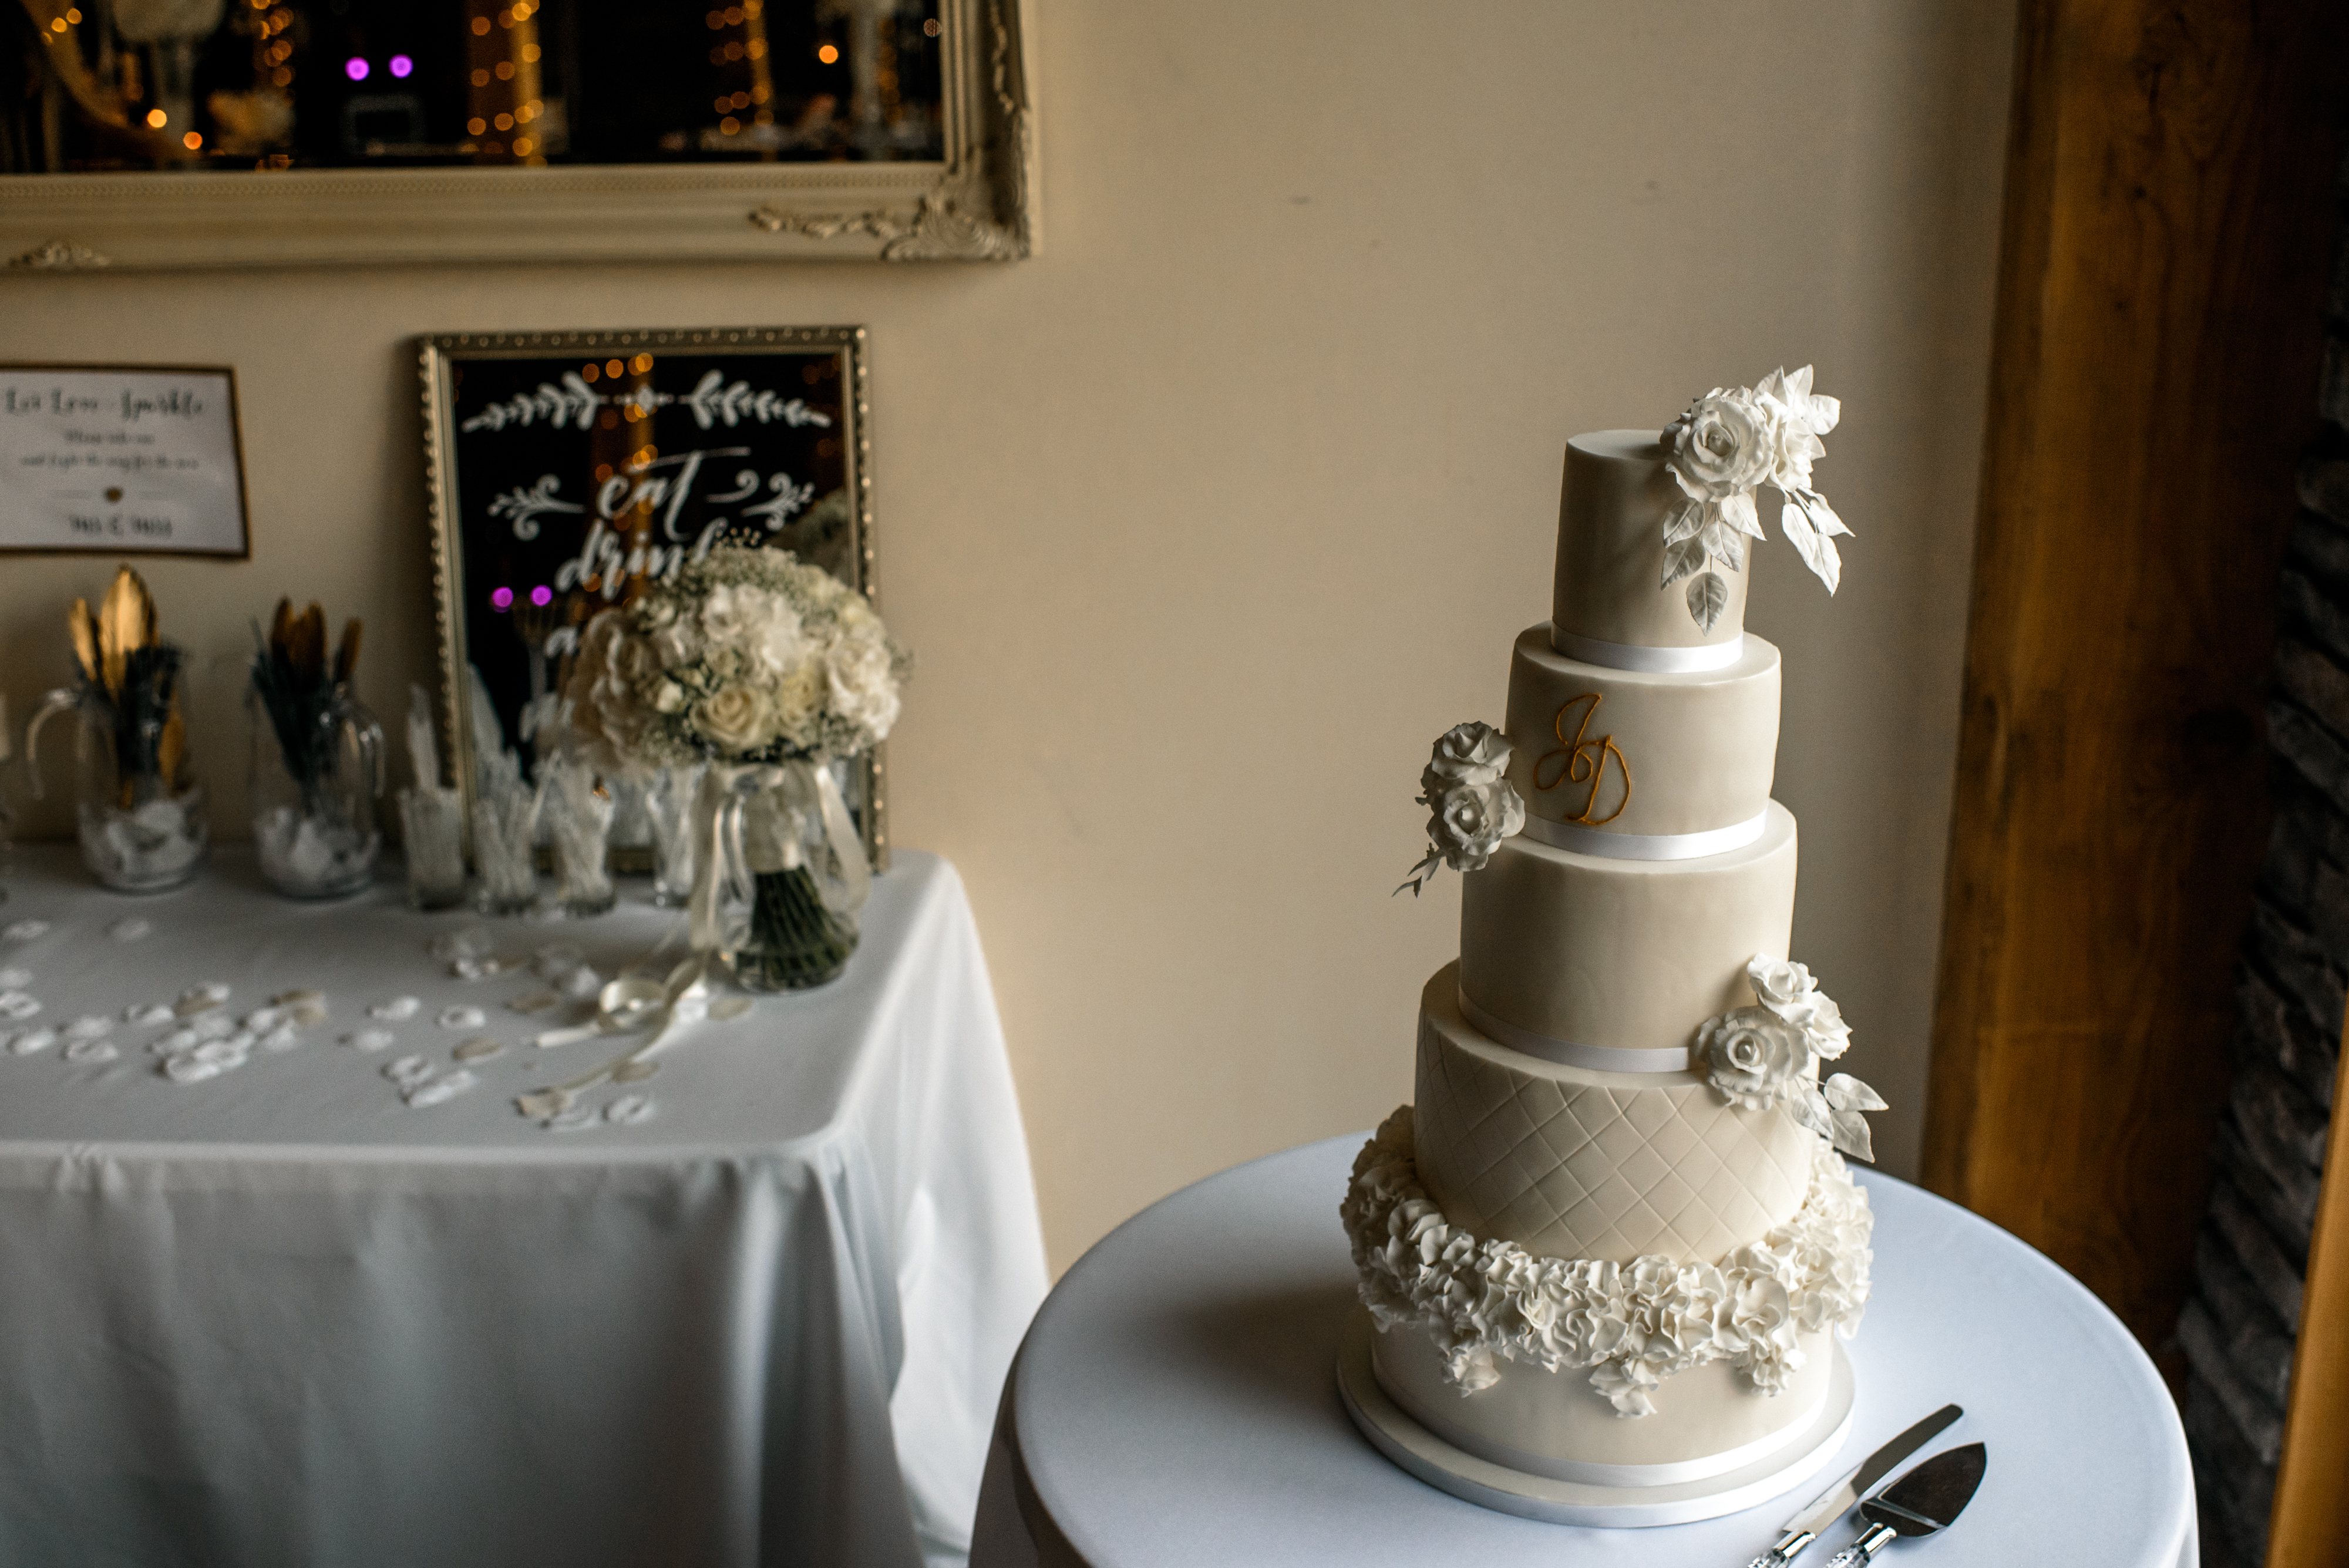 Jax's Cakes 'N' Bakes - Five tier wedding cake with white sugar roses